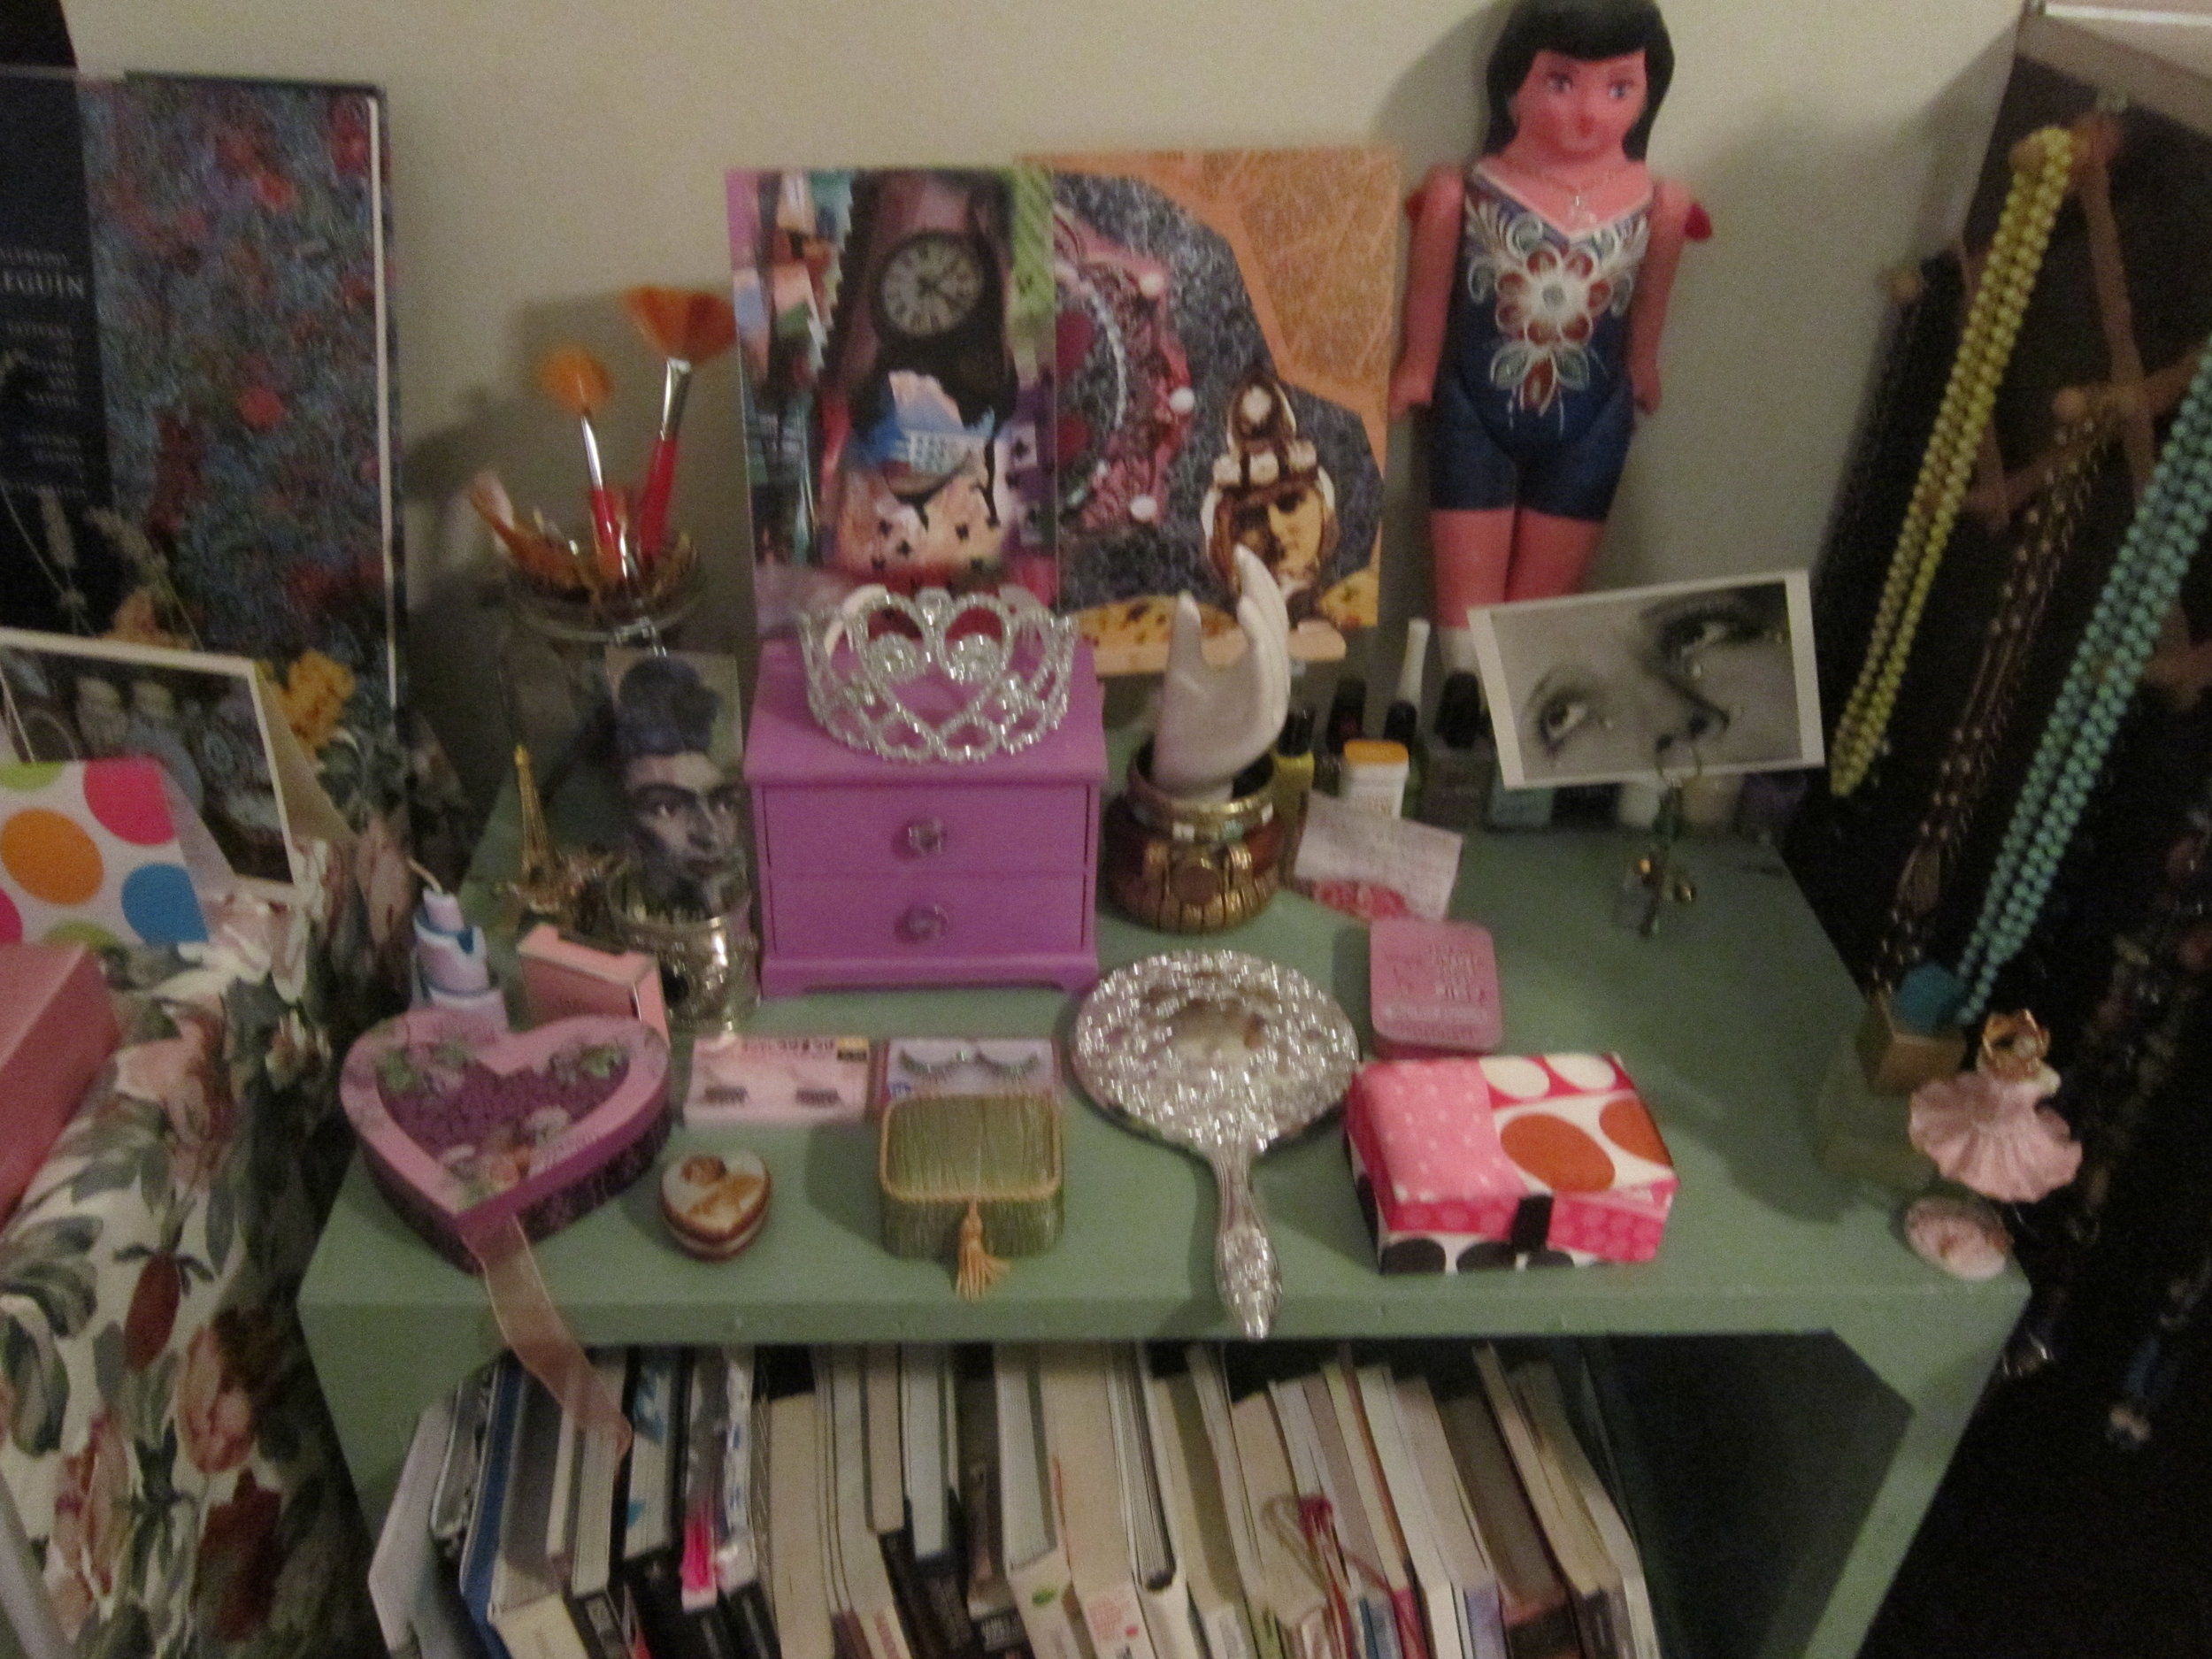 One of my altars